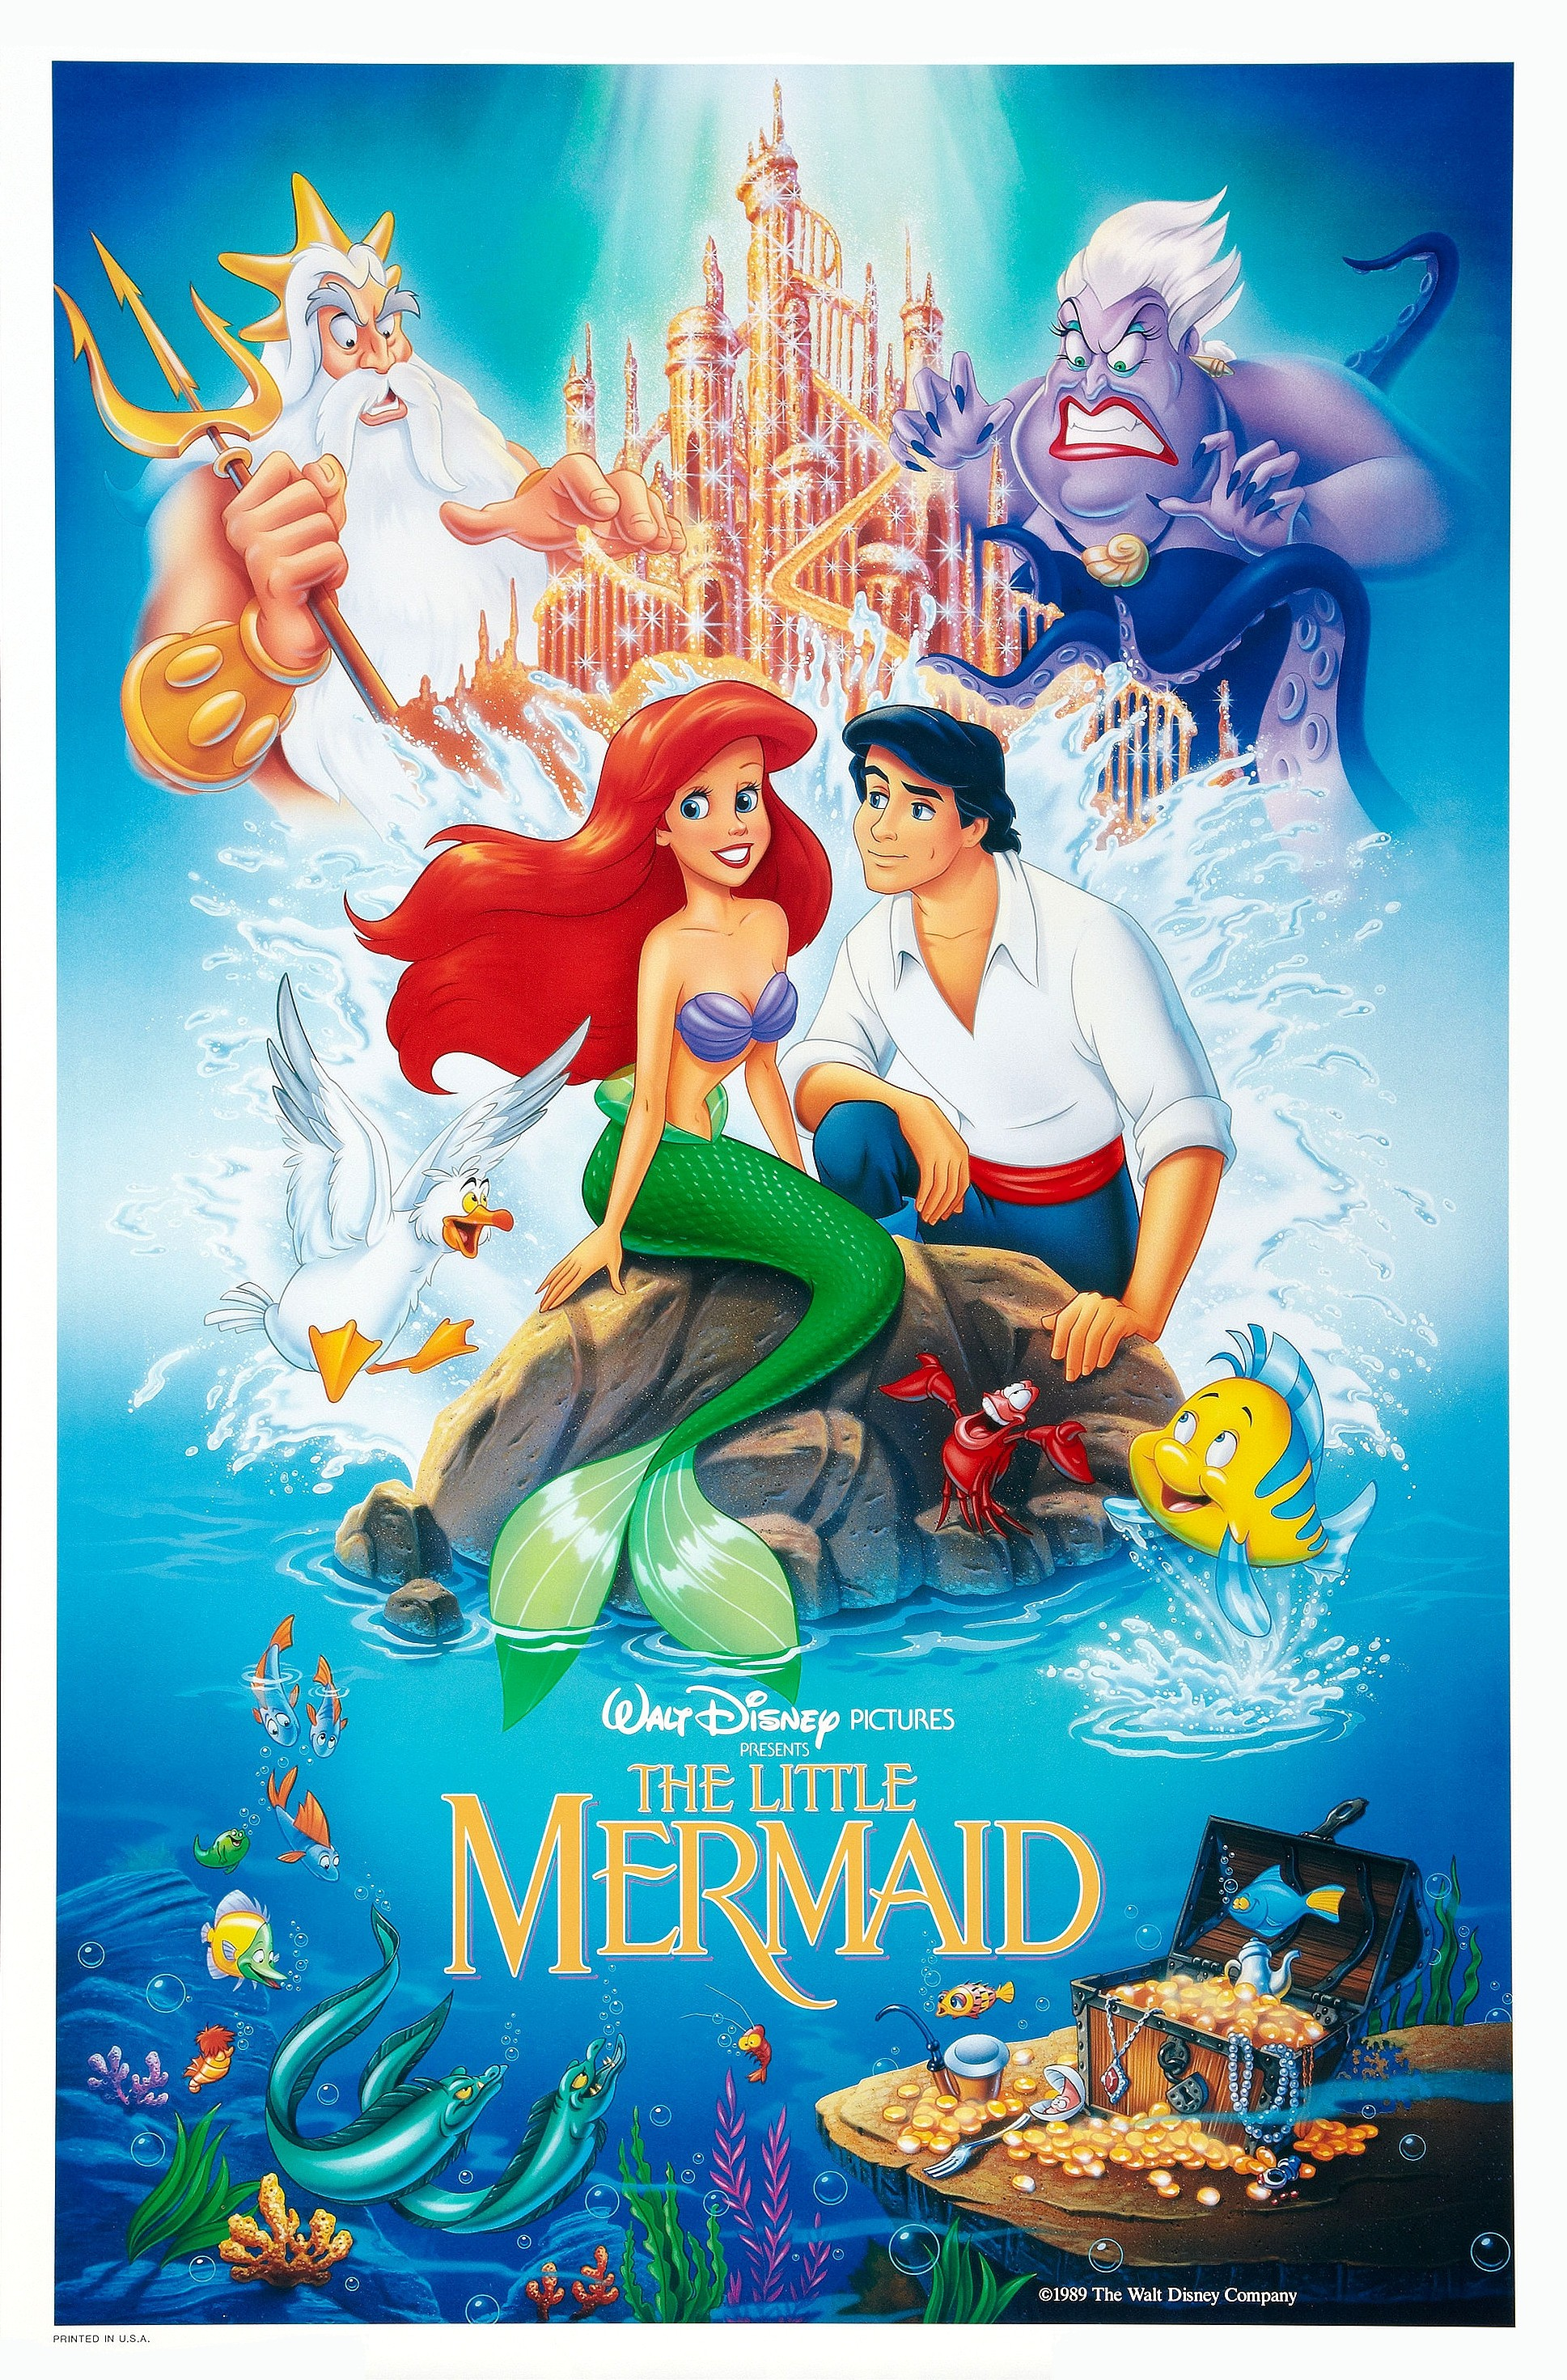 The Little Mermaid (1989) Review | The Cool Kat's Reviews